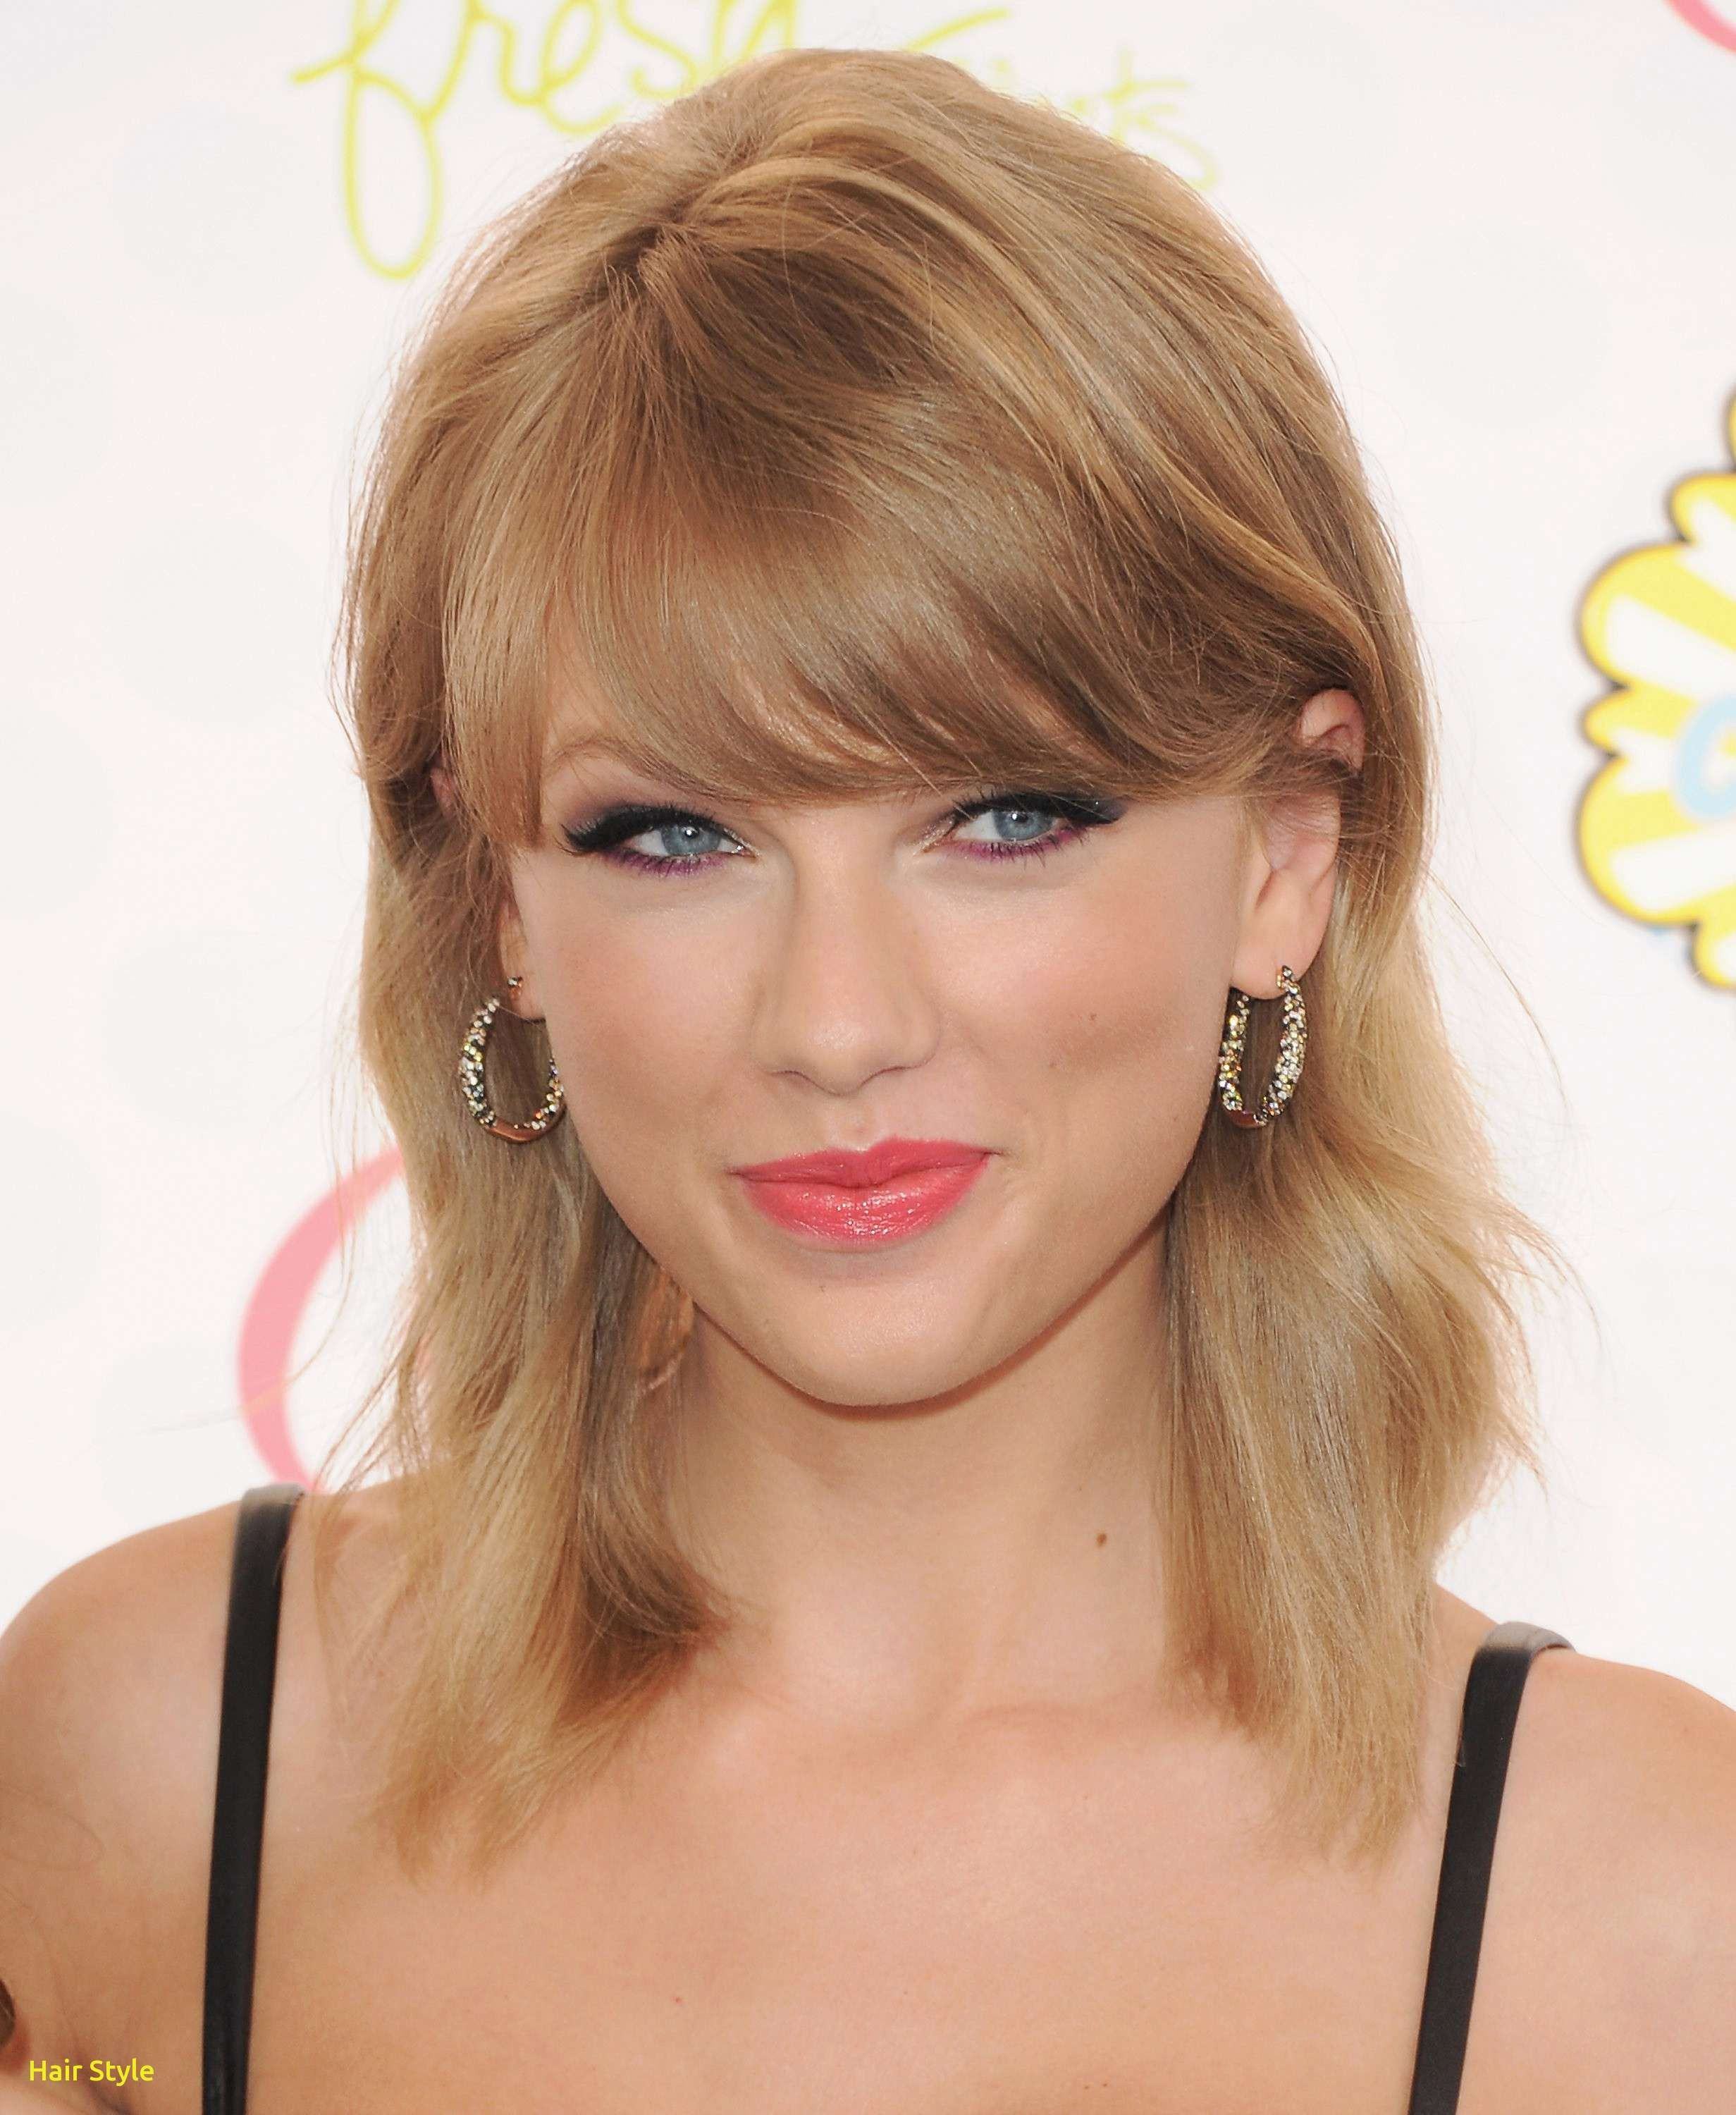 60s Hairstyles For Medium Length Hair Hairstylegirl Medium Hair Styles Medium Length Hair Styles Taylor Swift Hair